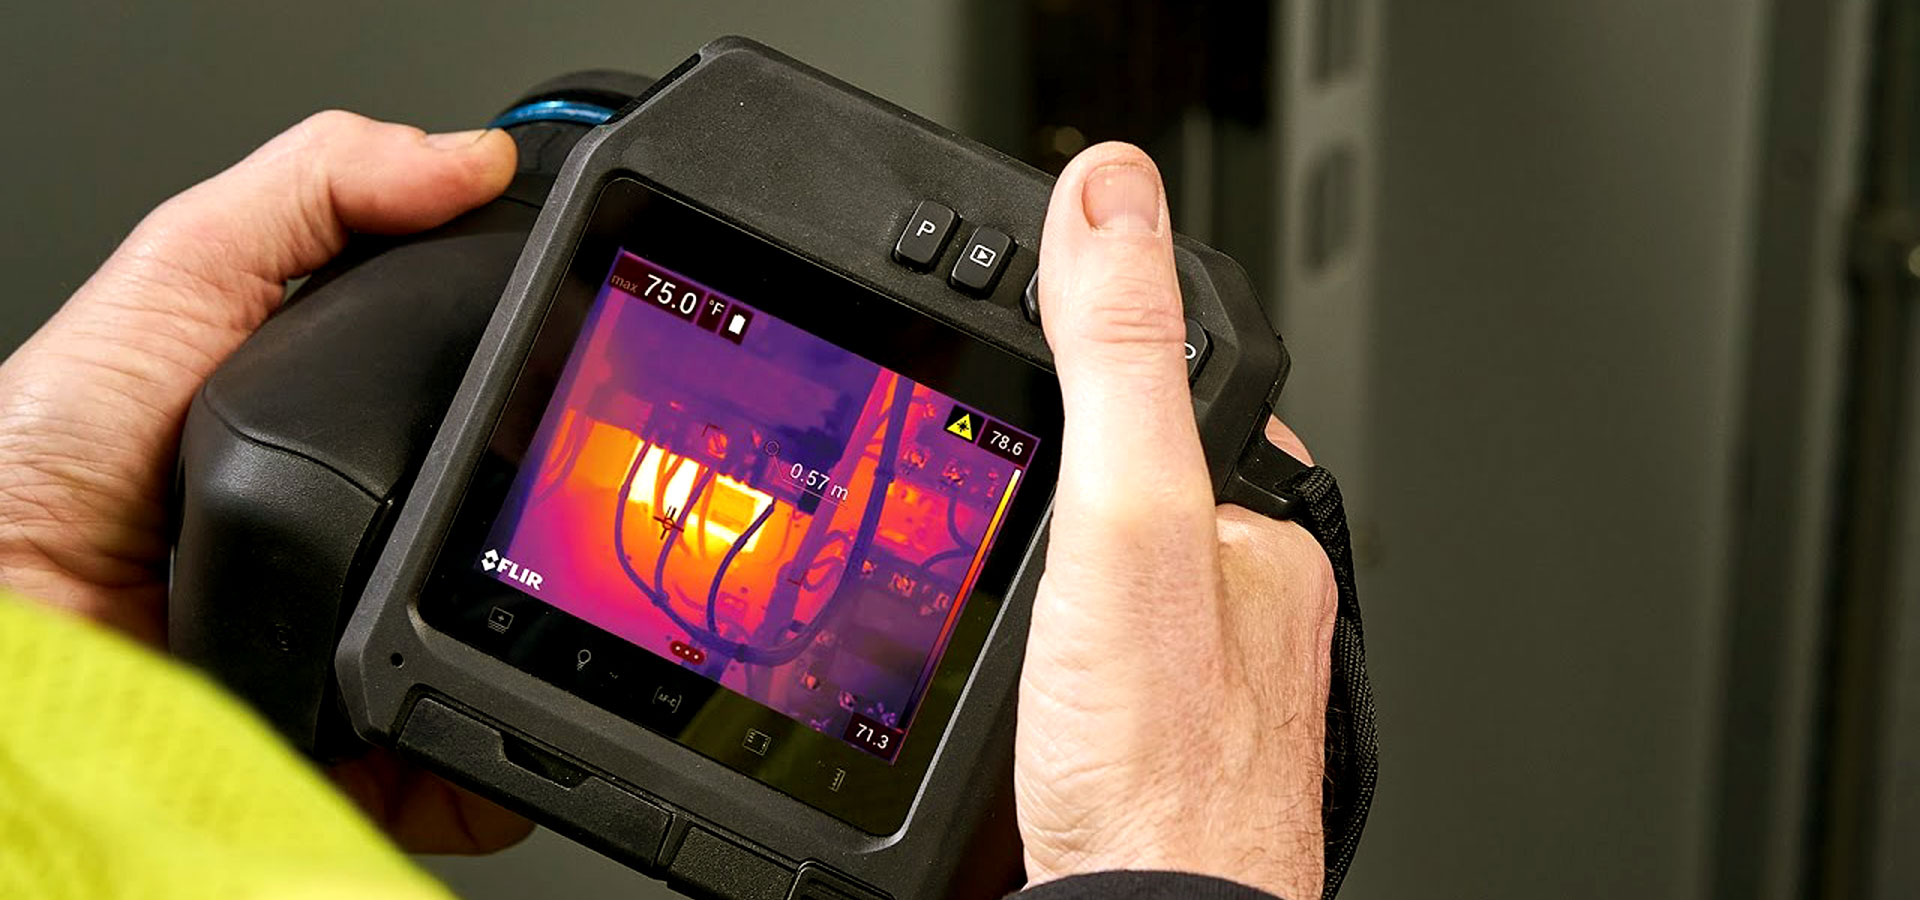 Flir Thermal Imaging